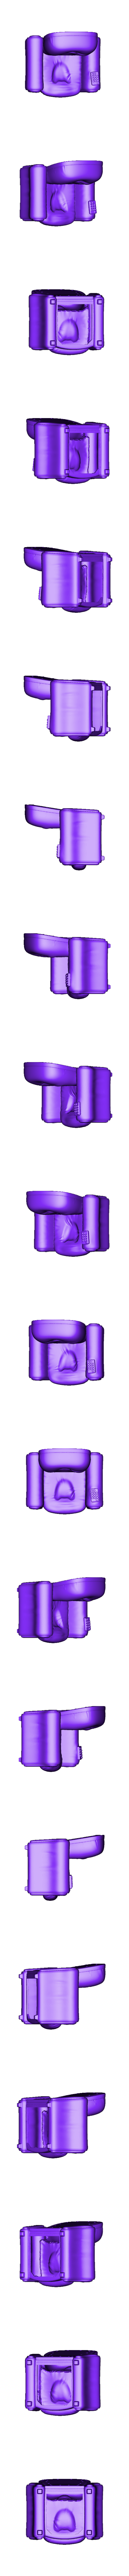 Duck_Armchair_Hollow.stl Download free OBJ file Relaxed Duck • 3D printing template, BlackSpire